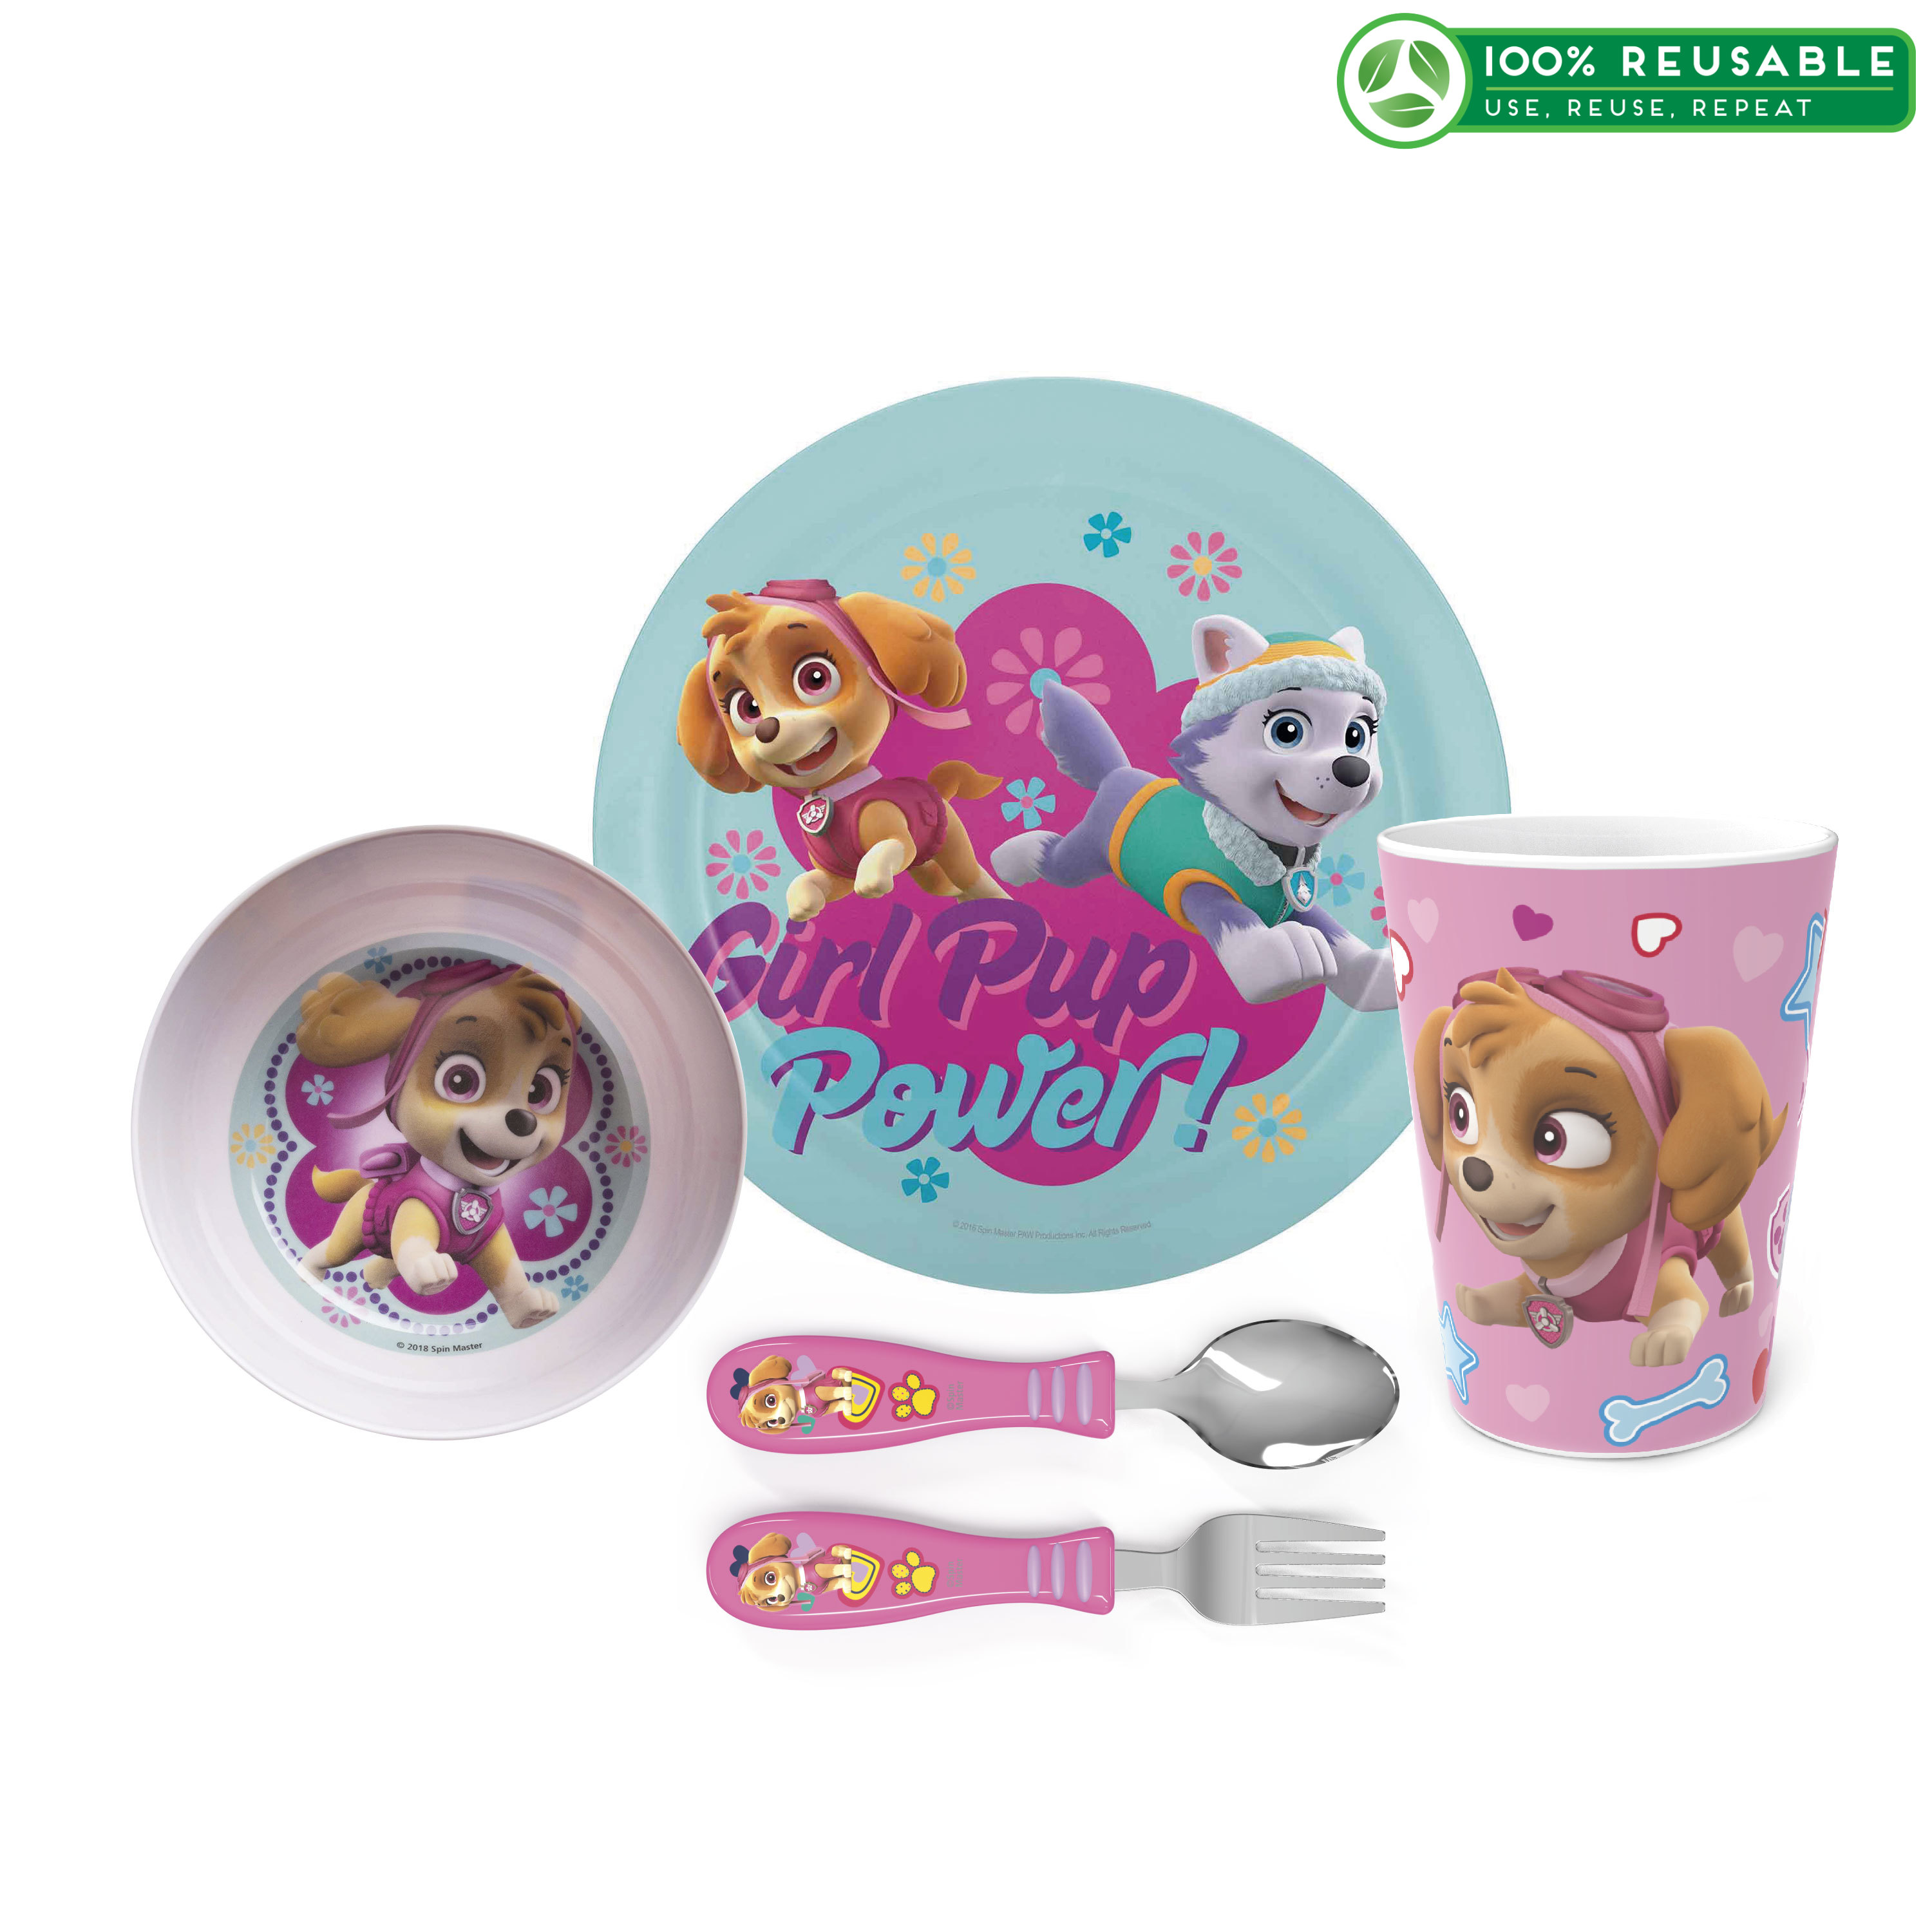 Paw Patrol Dinnerware Set, Skye and Everest, 5-piece set image